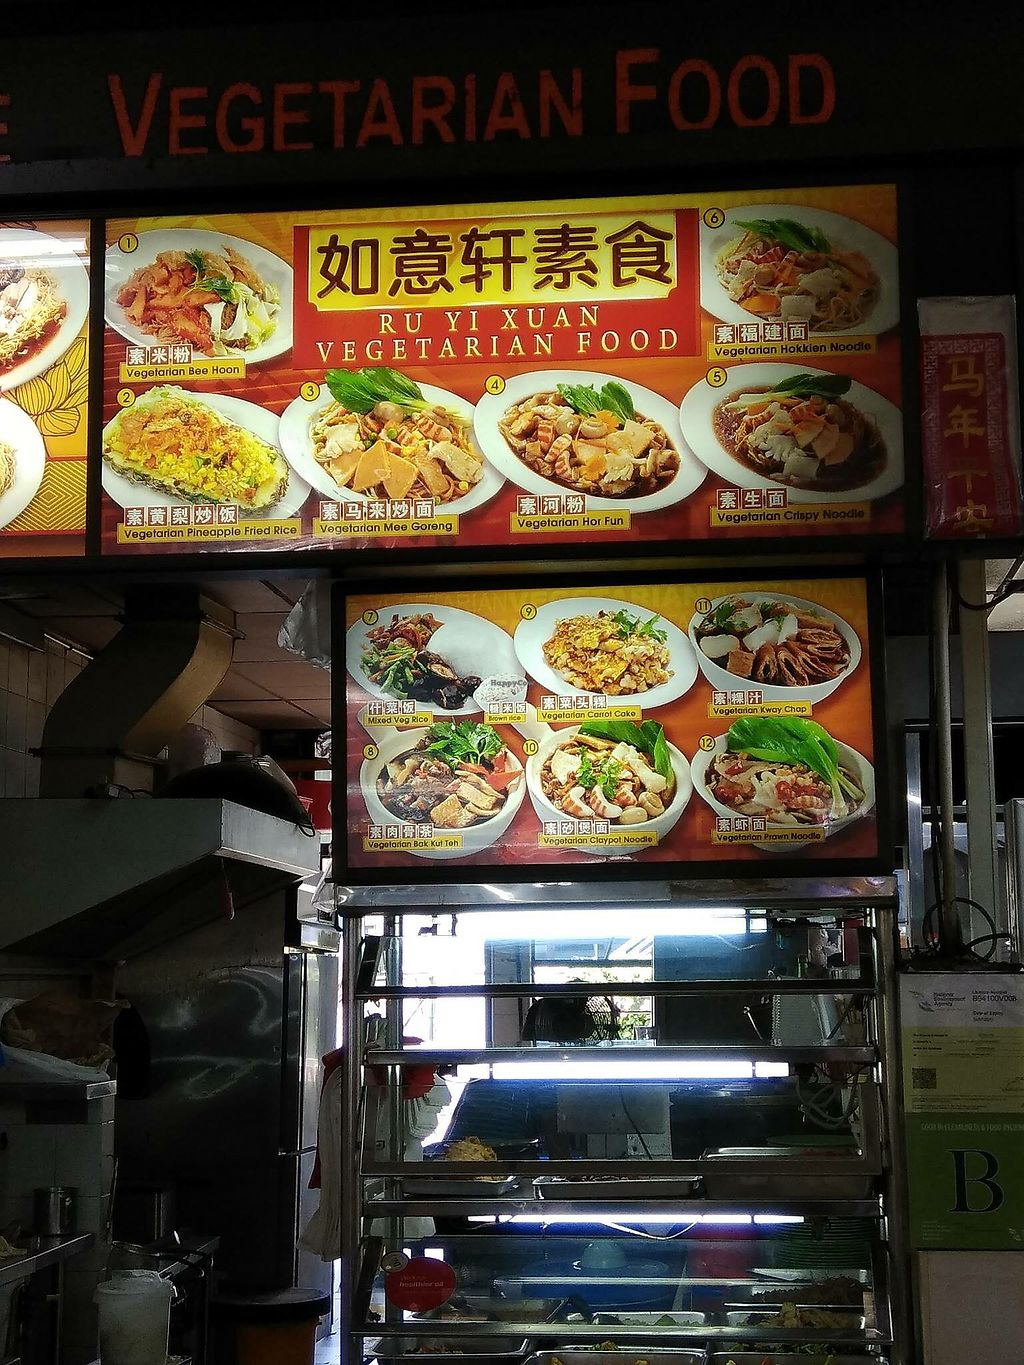 "Photo of Ru Yi Xuan Vegetarian Stall  by <a href=""/members/profile/CherylQuincy"">CherylQuincy</a> <br/>Stall front <br/> January 25, 2018  - <a href='/contact/abuse/image/91388/350793'>Report</a>"